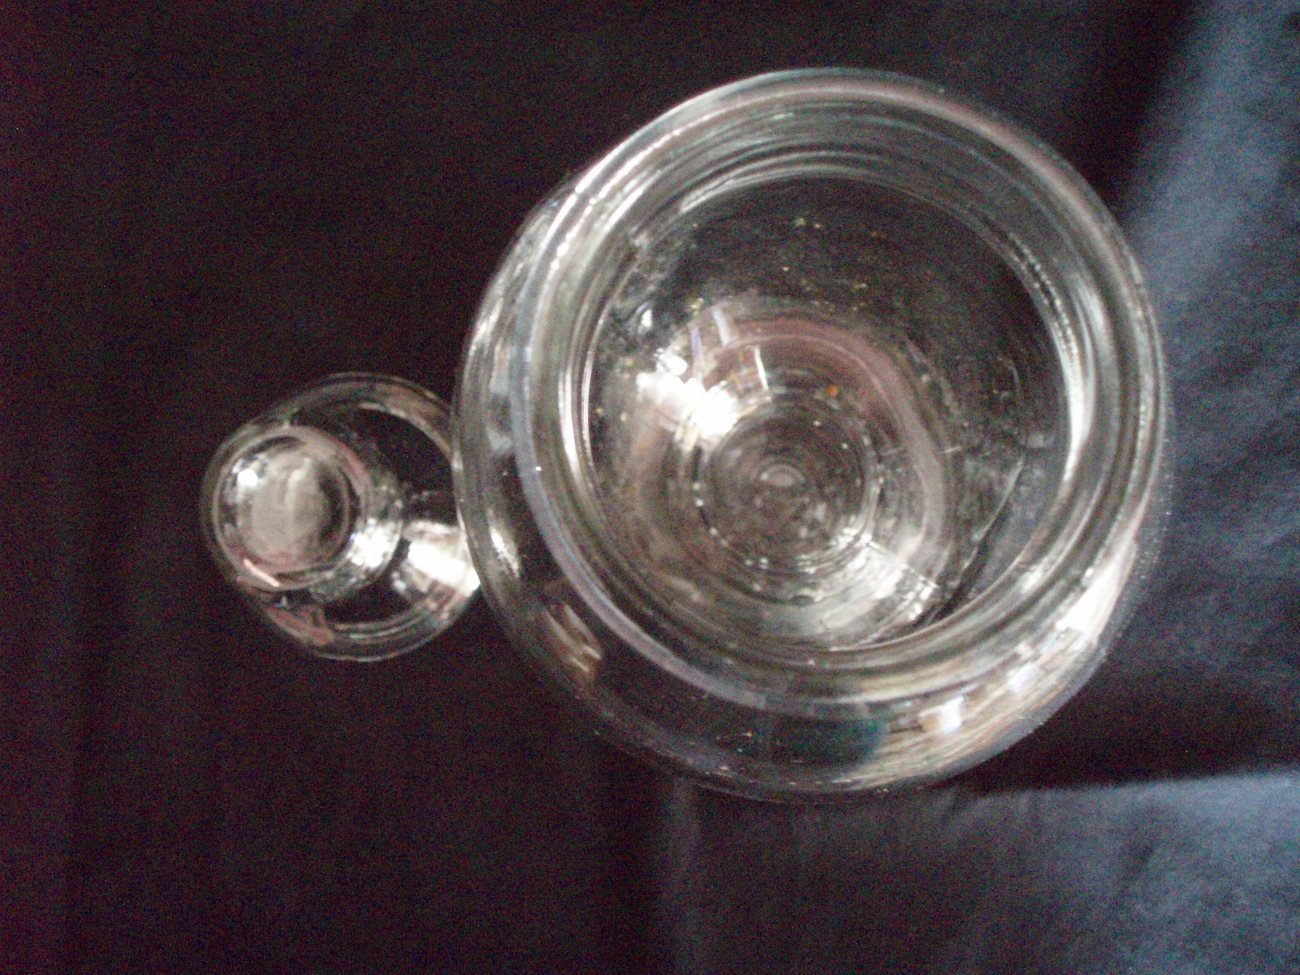 FABULOUS VINTAGE FRENCH GLASS APOTHECARY CANDY JAR FROM